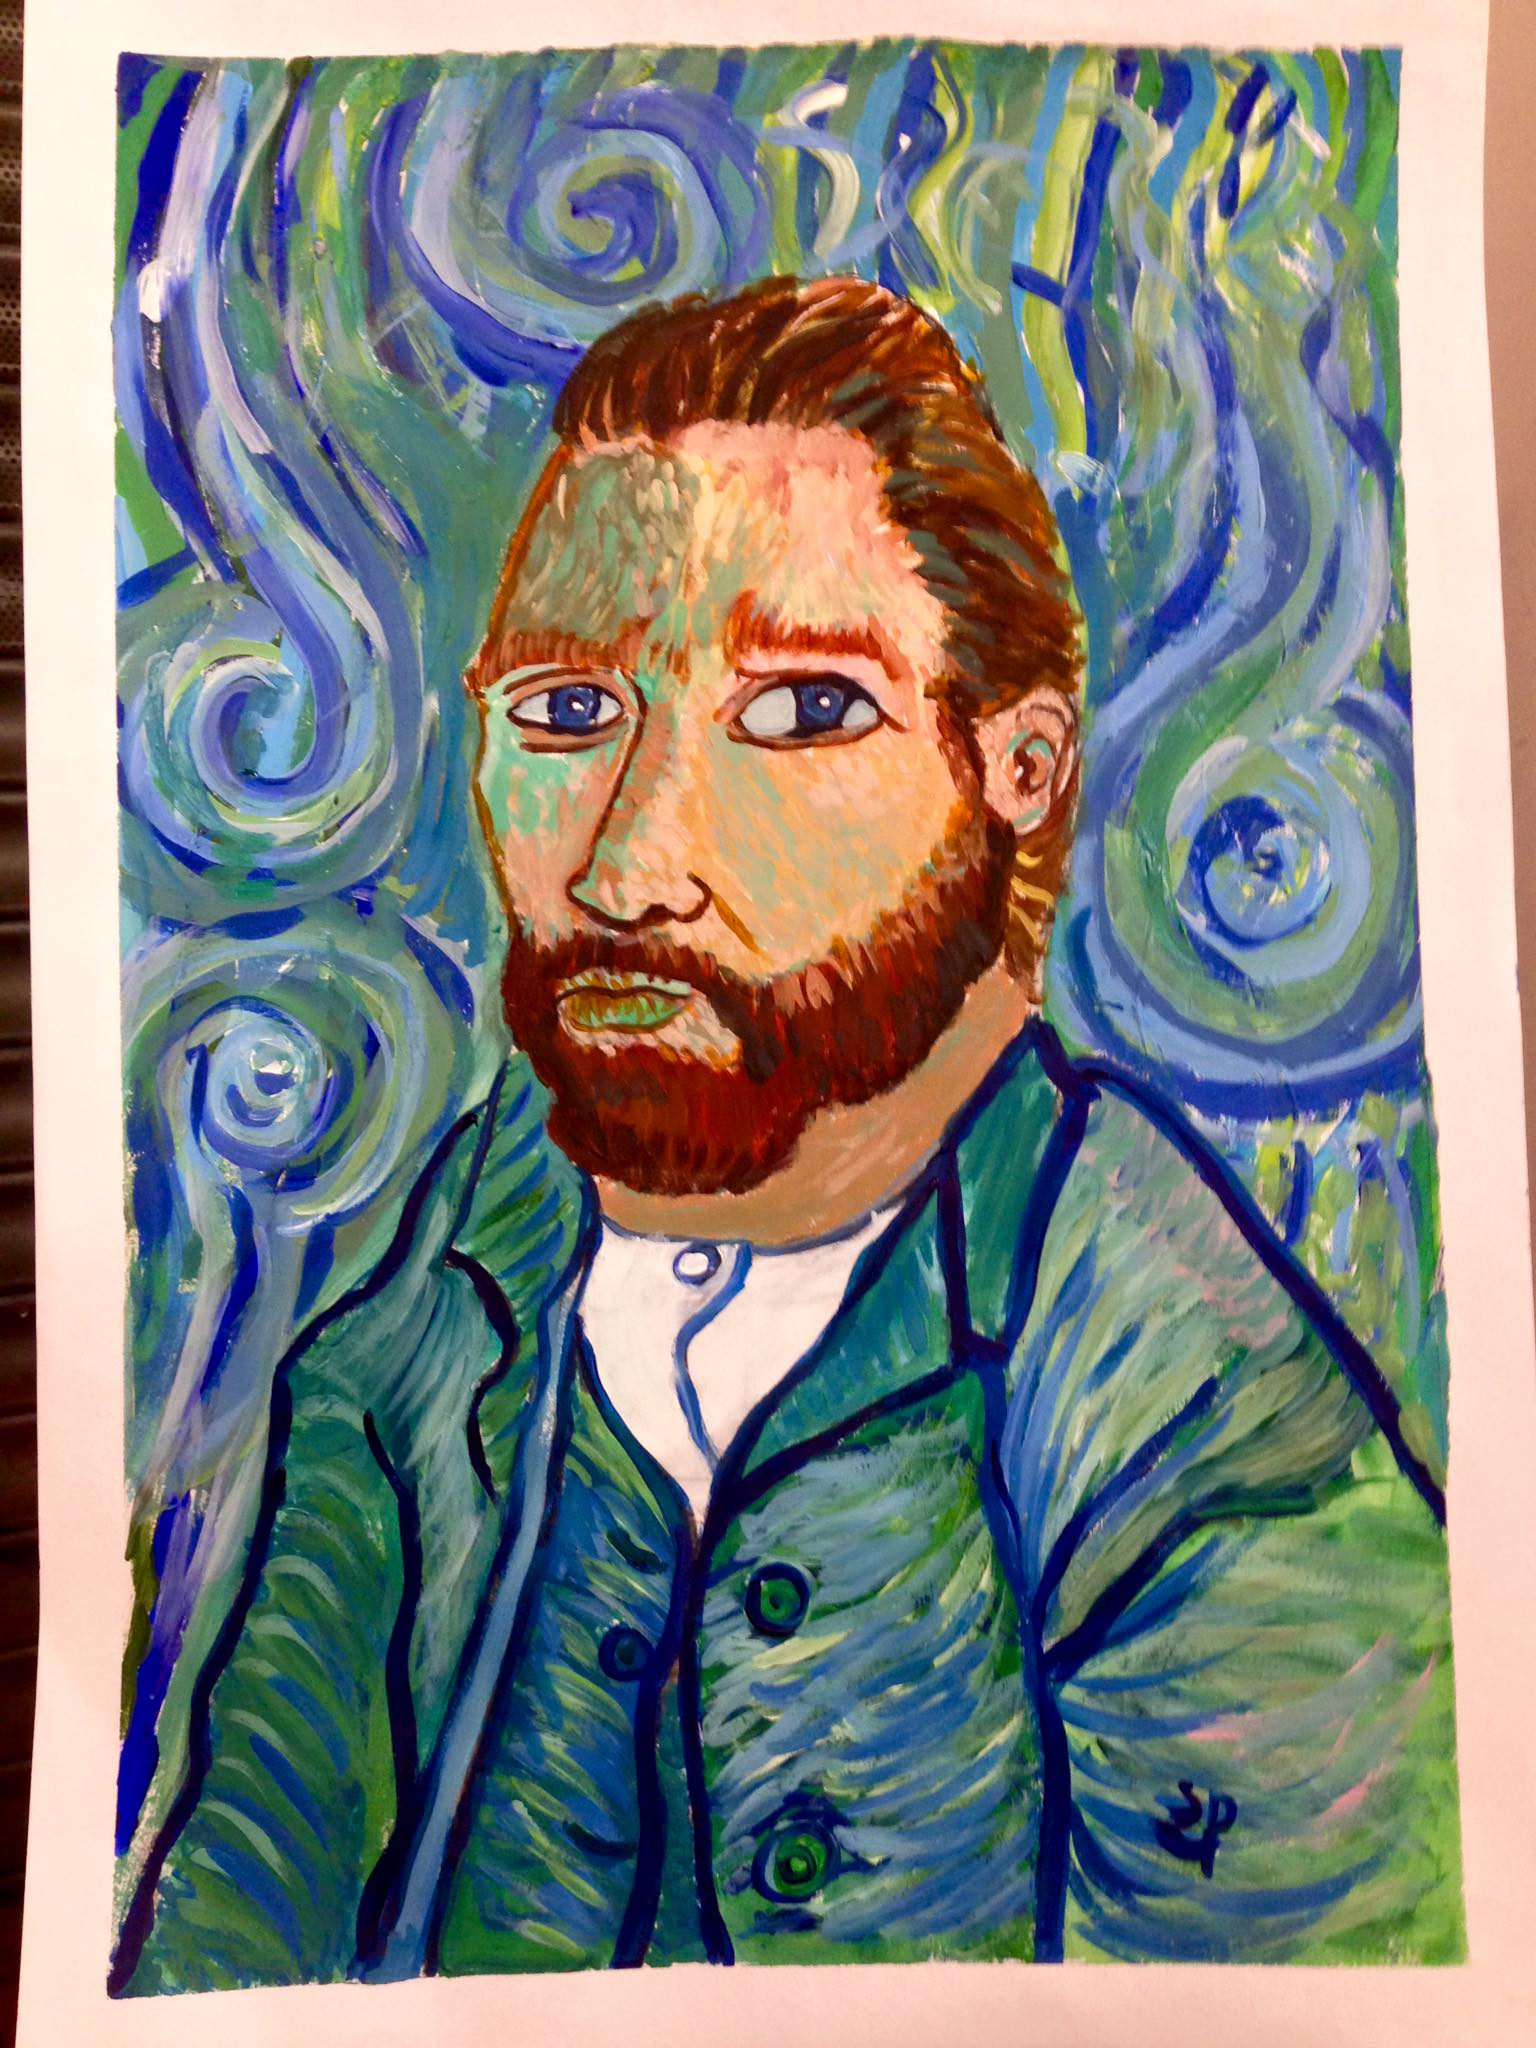 Copied from Van Gogh. Student aged 8